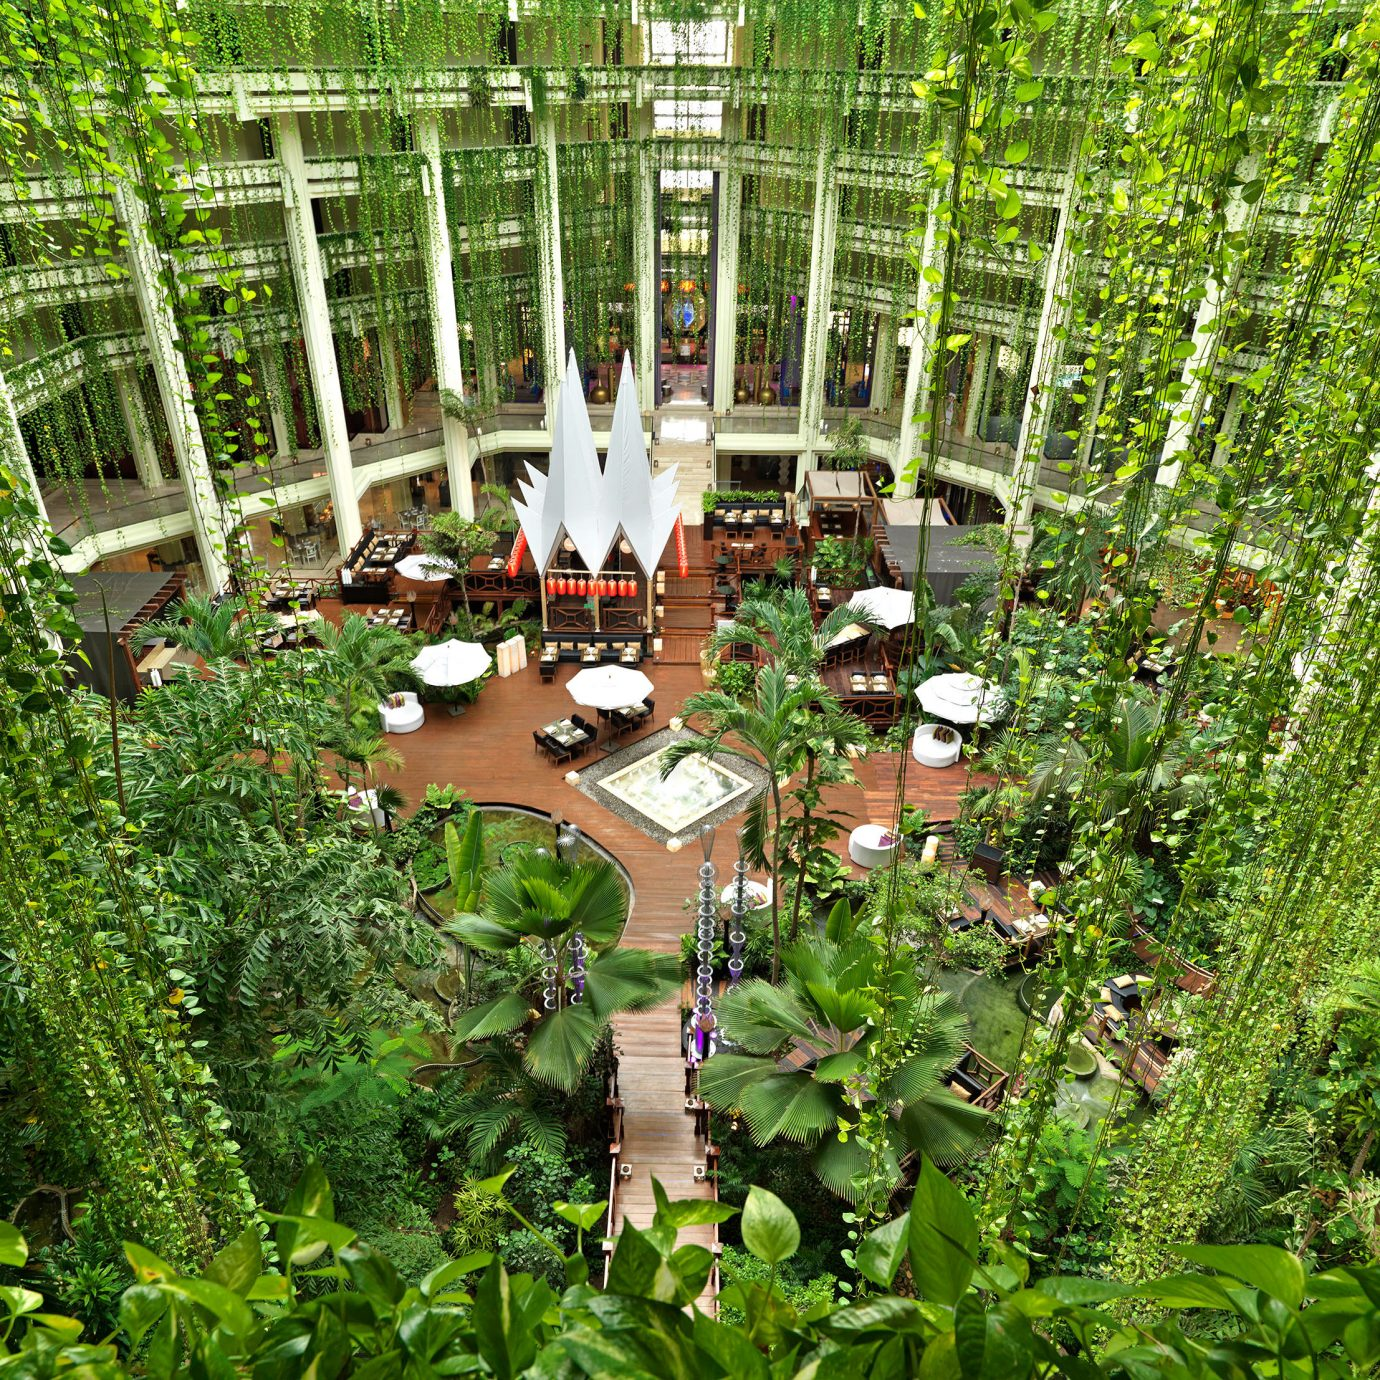 All-inclusive Family Lobby Modern Resort Tropical tree Garden green building botany plant backyard flower yard woodland Forest botanical garden outdoor structure Jungle rainforest lawn landscape architect pond bushes surrounded